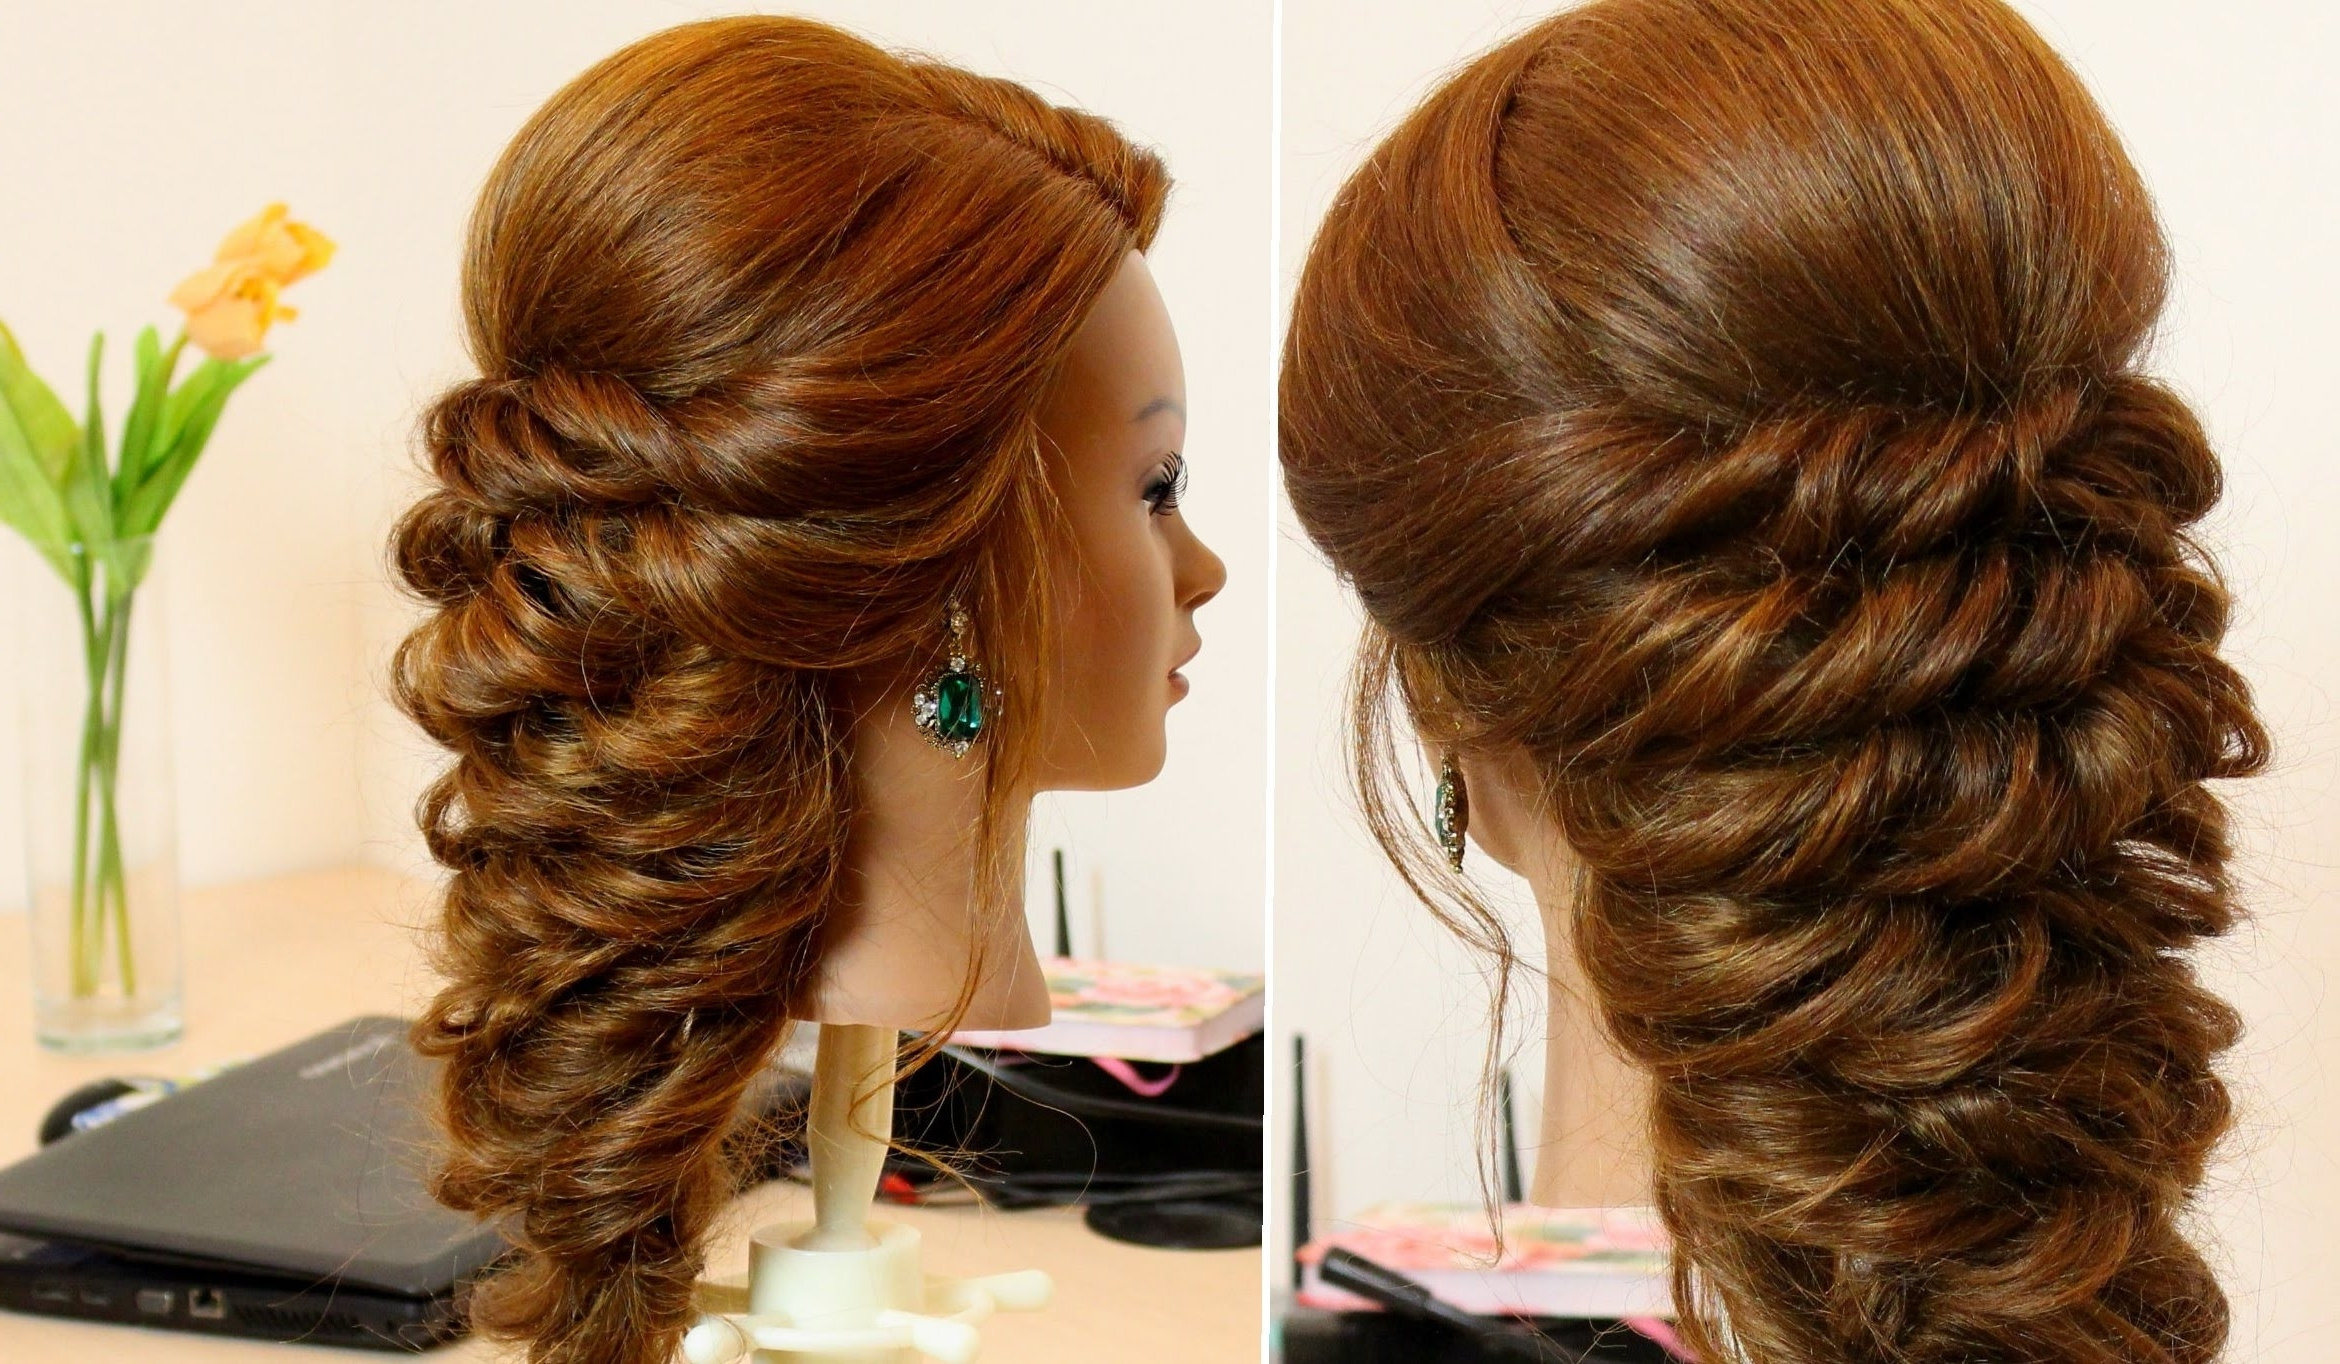 Easy Hairstyle For Long Hair Tutorial – Youtube Throughout Recent Wedding Hairstyles For Very Long Hair (Gallery 12 of 15)